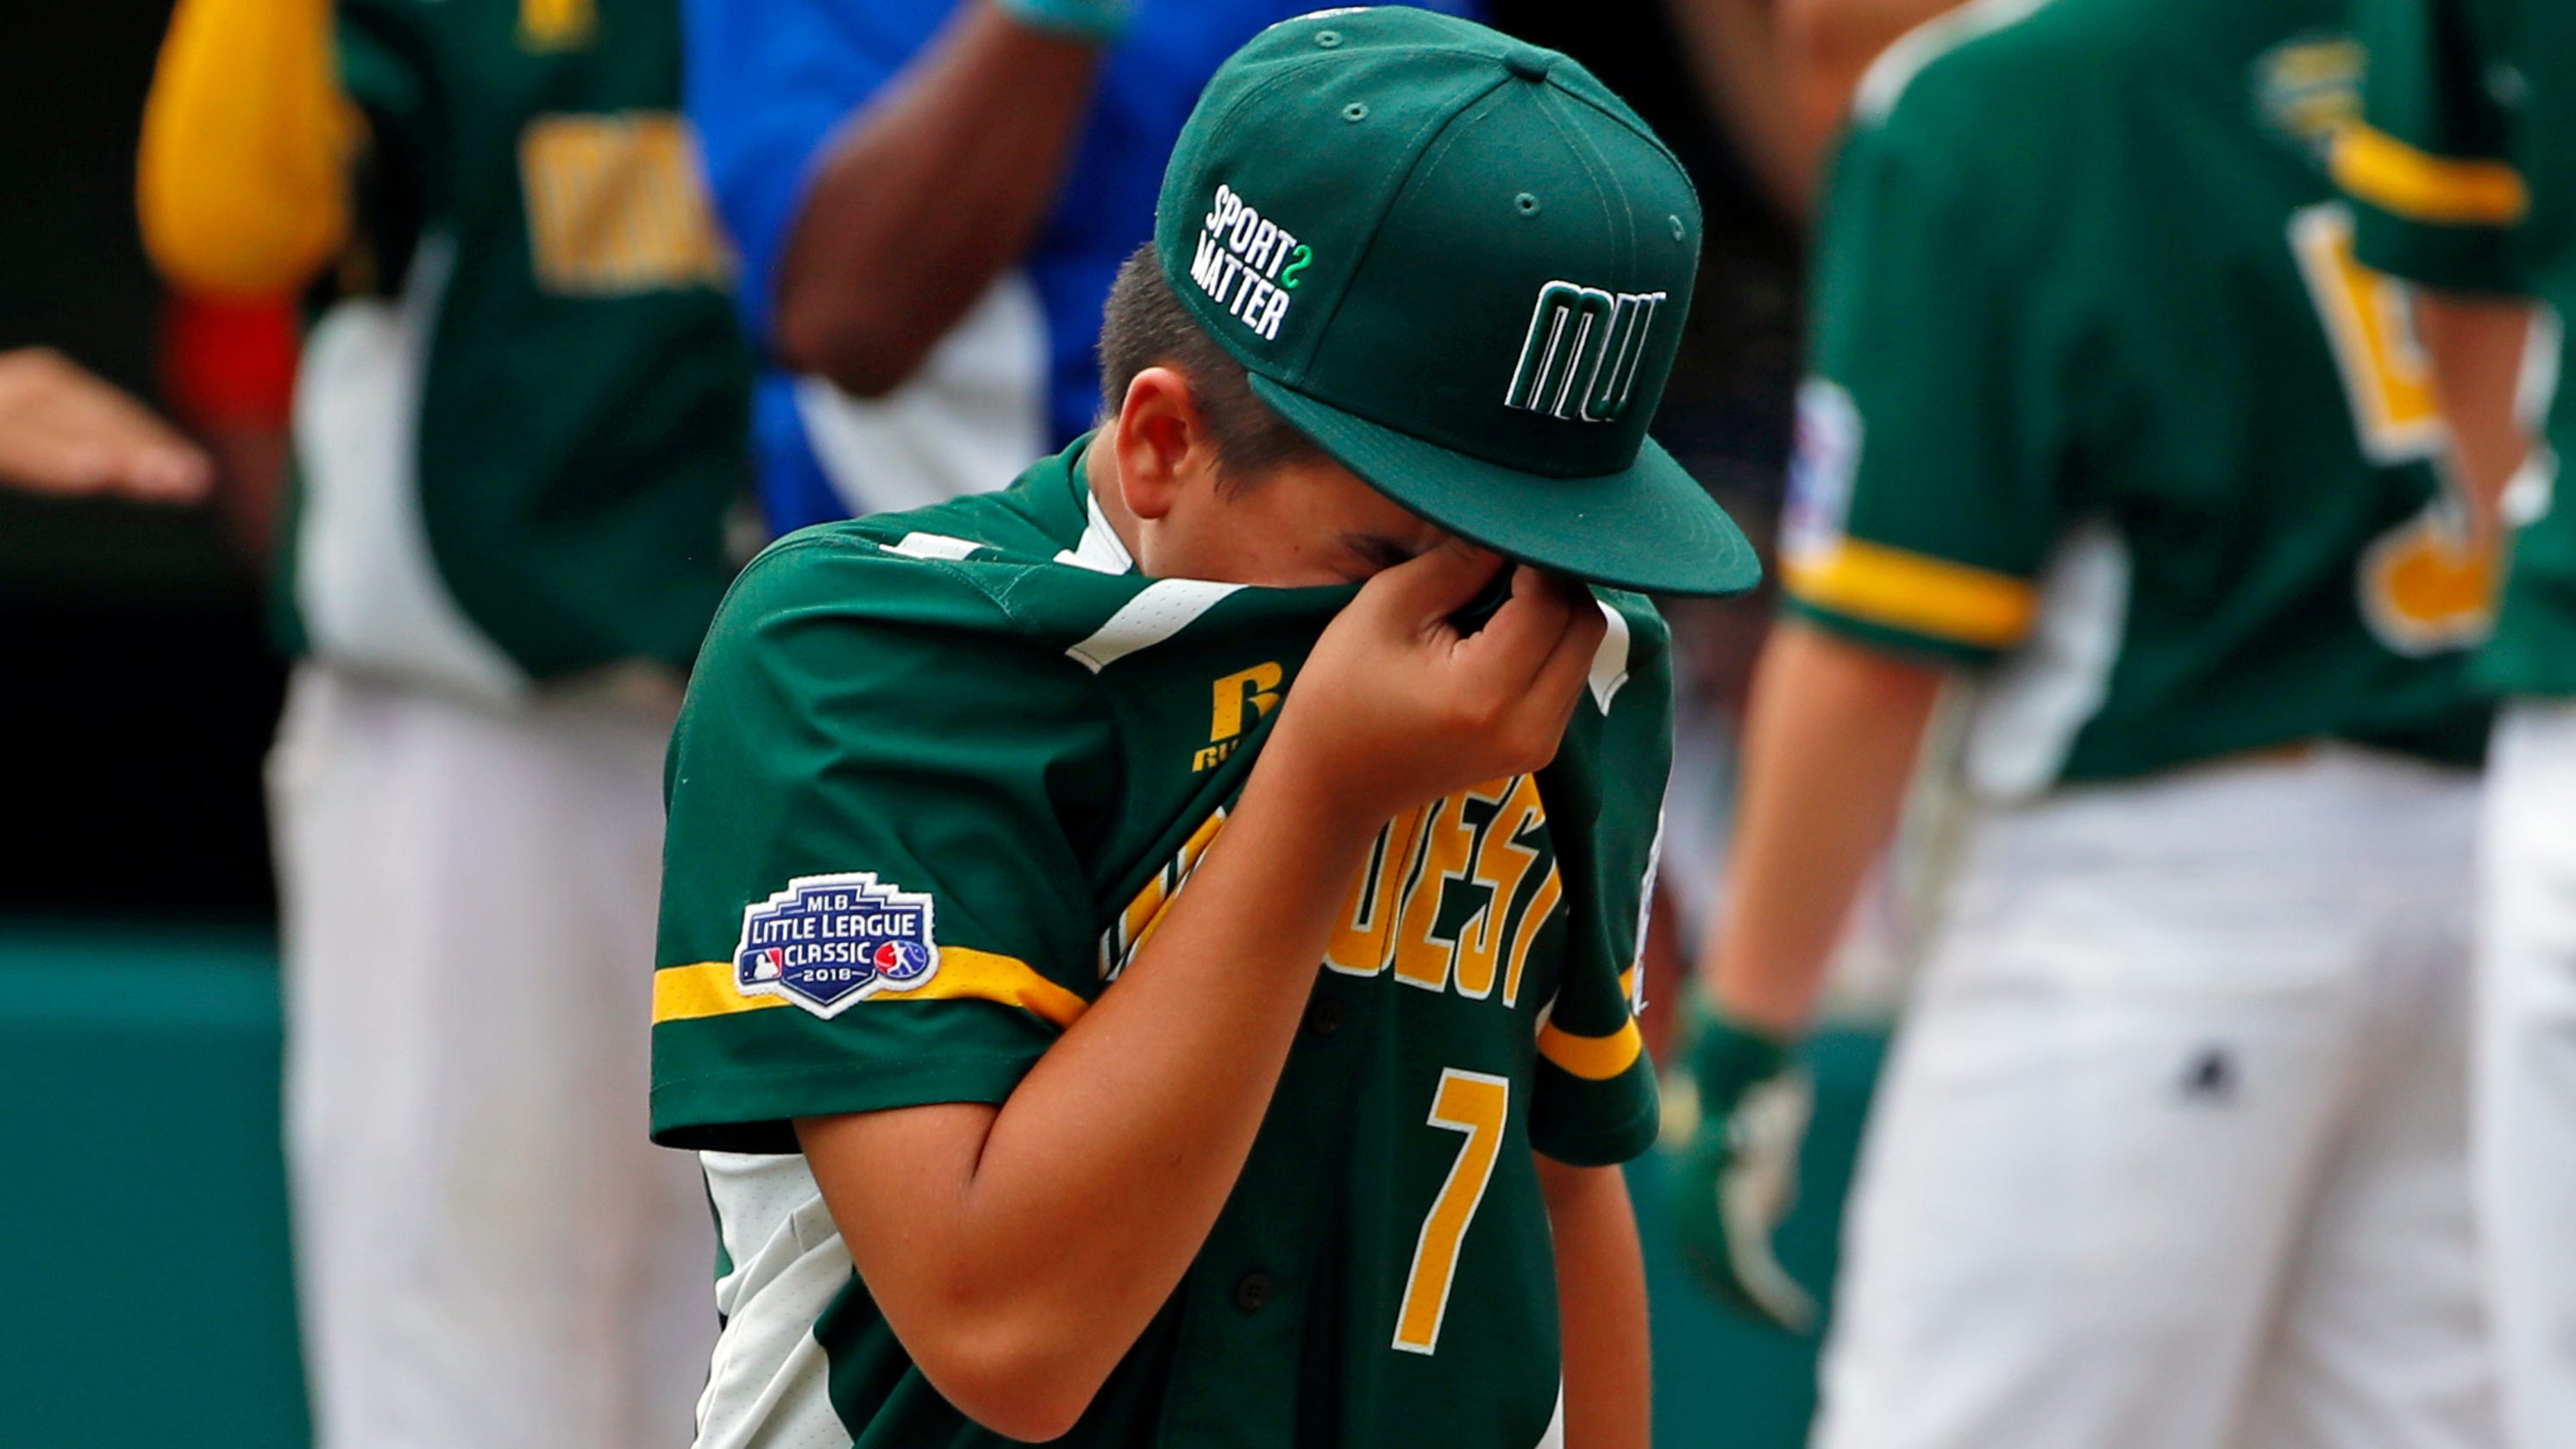 Little League World Series: Iowa's Grandview eliminated by Michigan